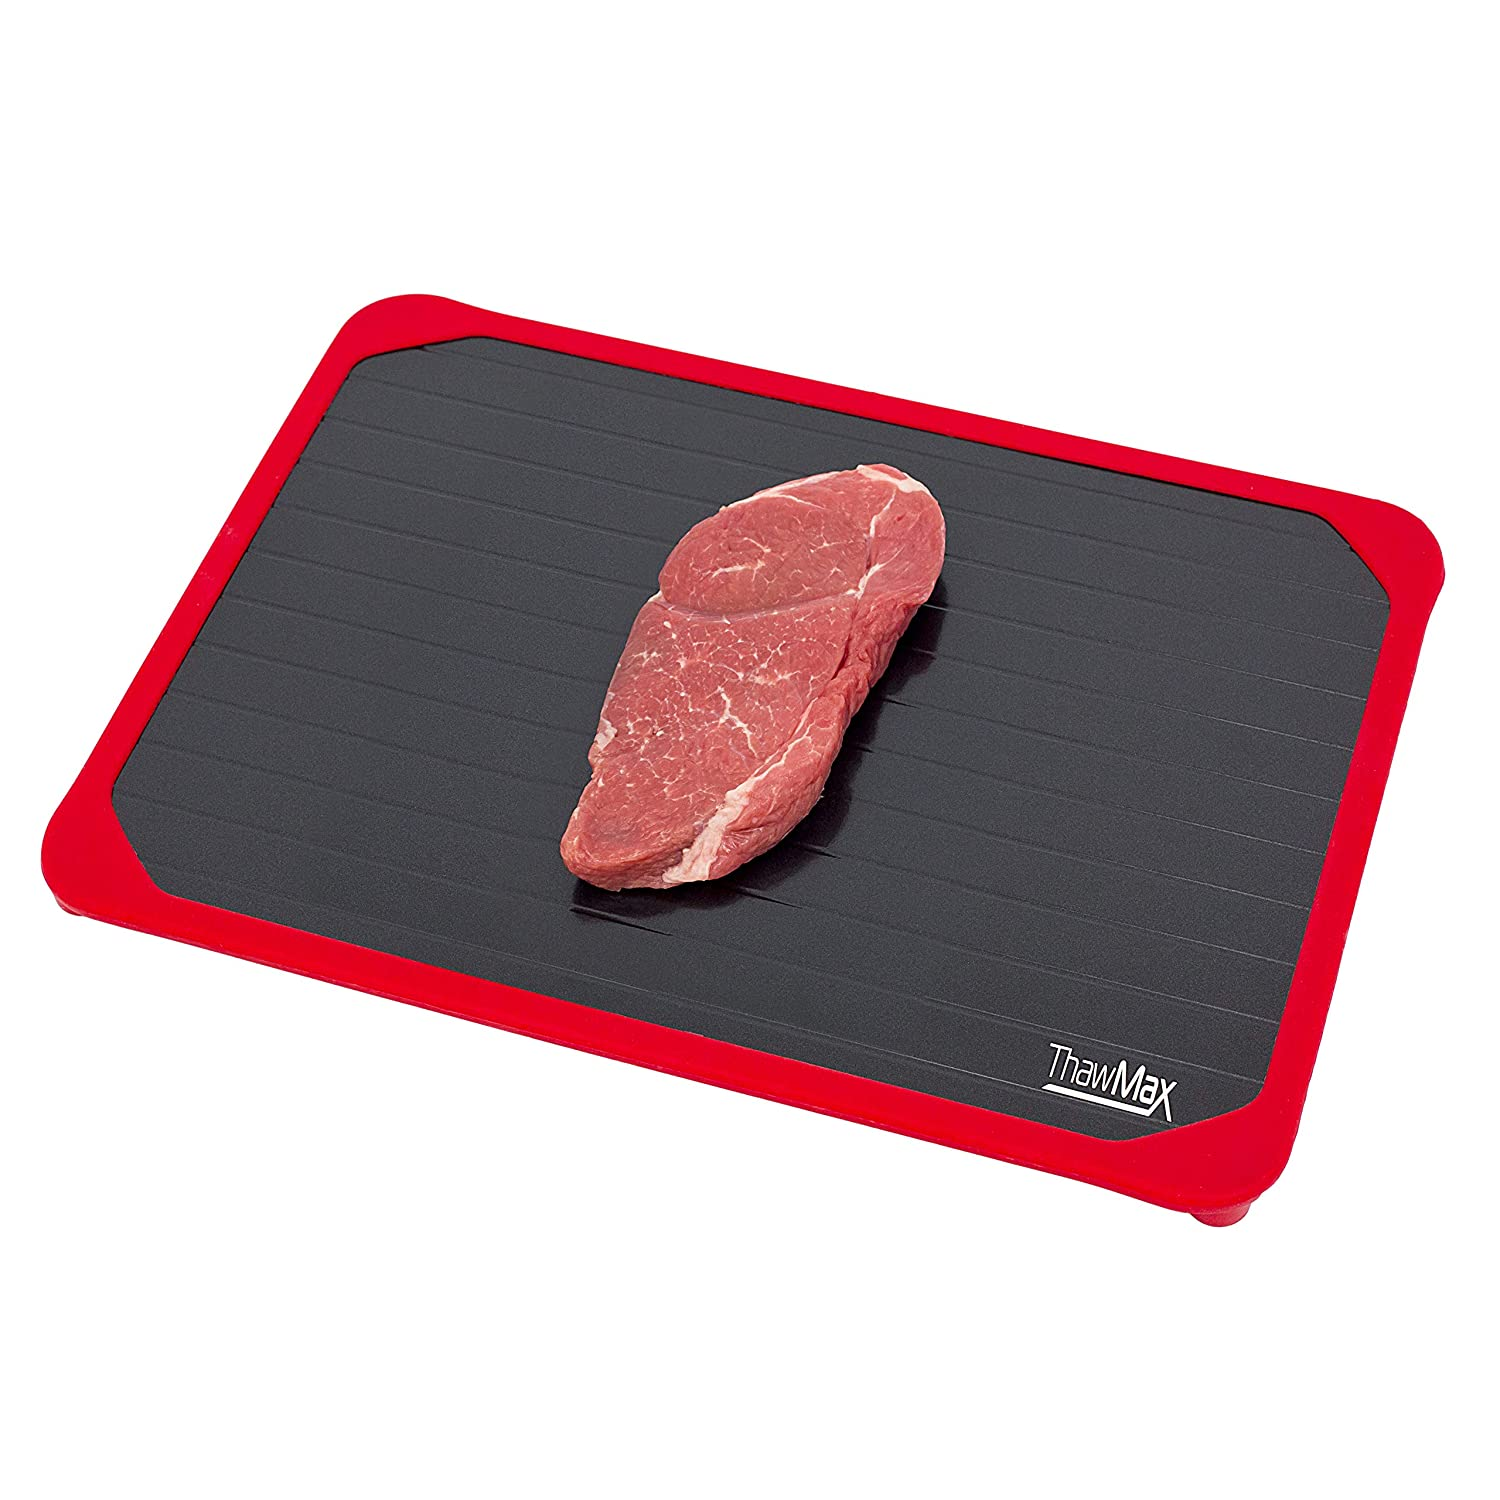 ThawMax Rapid Defrosting Tray | Defrost Chicken, Steak and other Meats Quickly | No Mess Full Silicone Border | Thaw Frozen Foods Faster without a Microwave or Hot Water | Quick and Safe